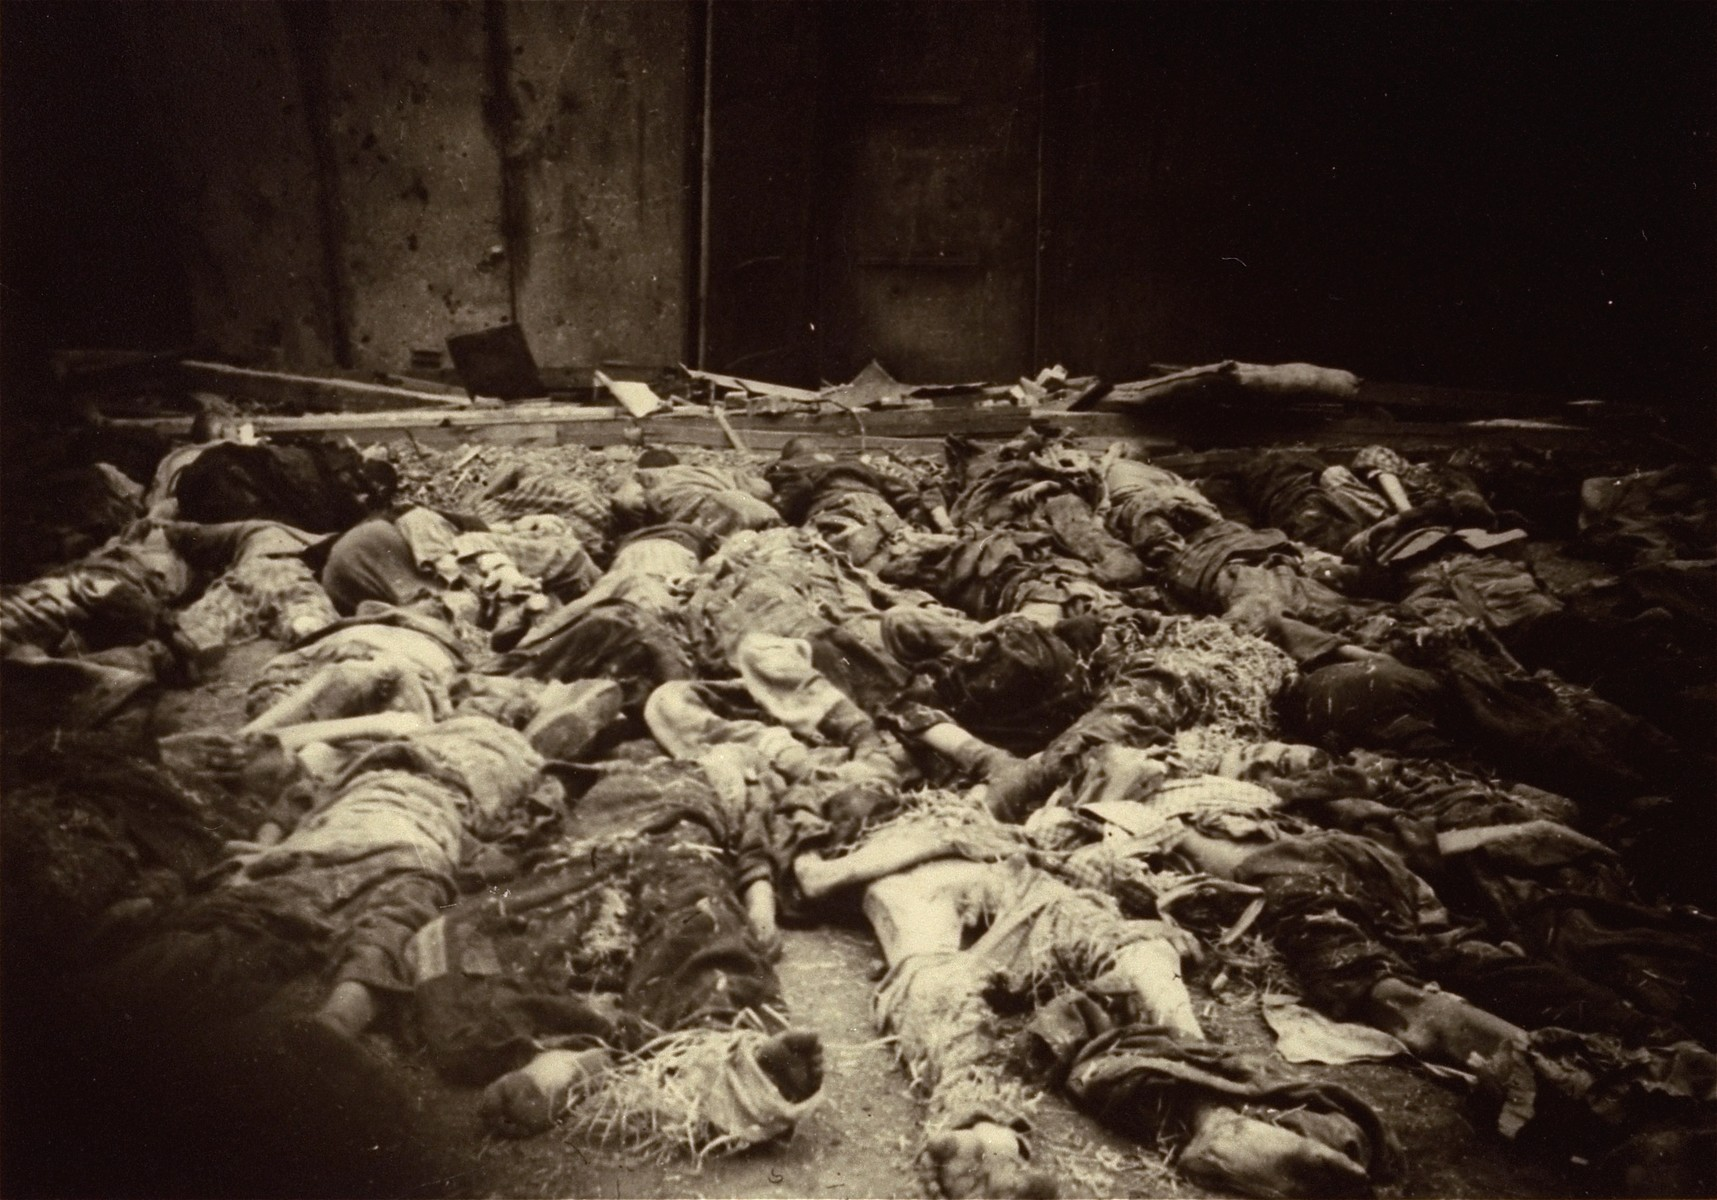 The bodies of prisoners lie on the ground in the newly liberated Nordhausen concentration camp.